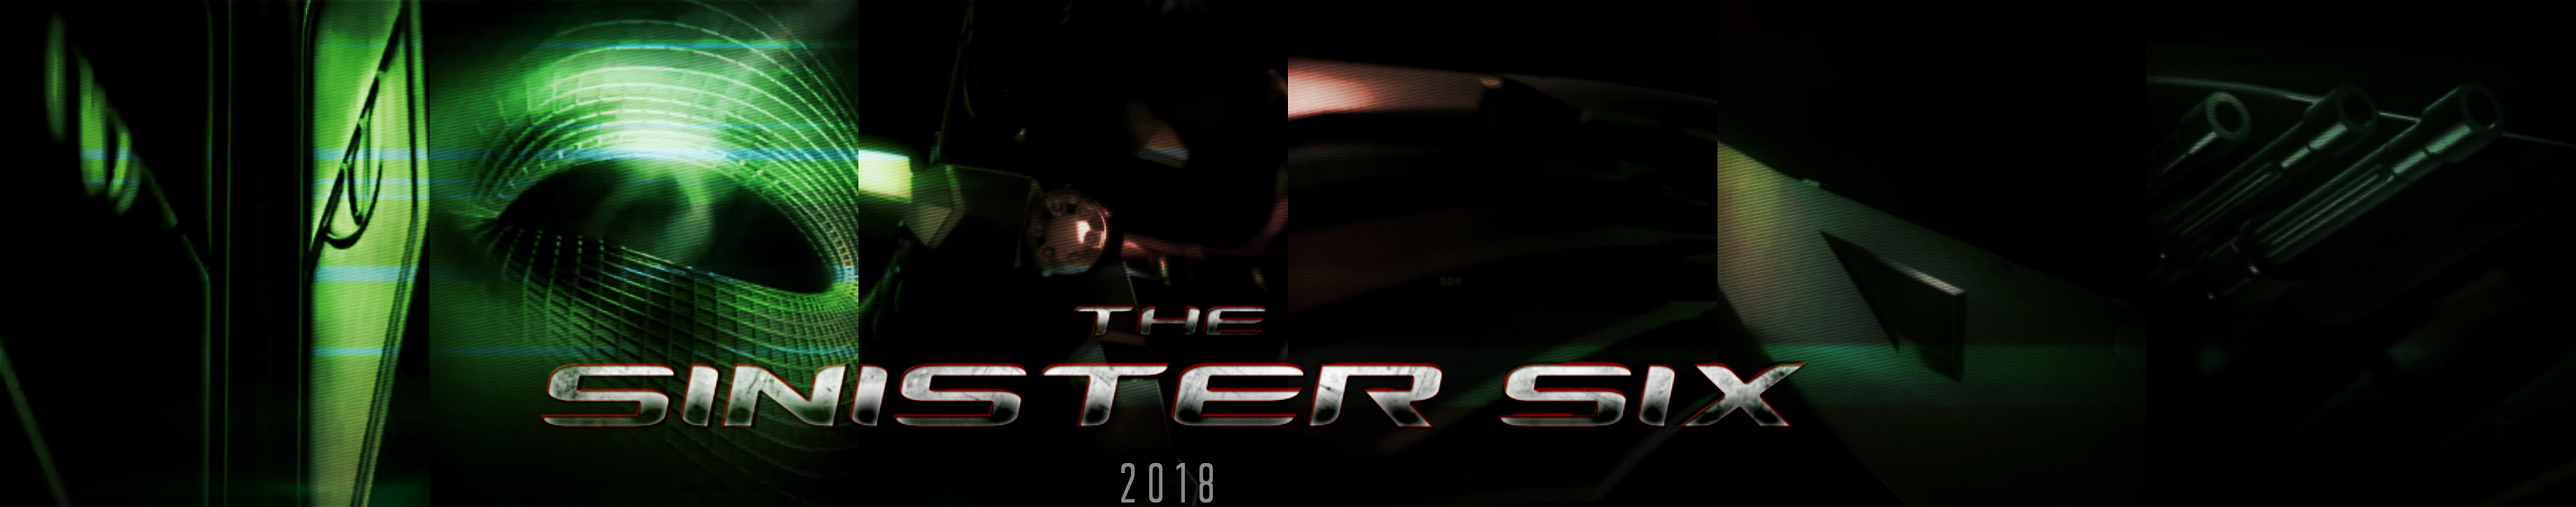 The Sinister Six Banner 2018 (Fan-Made) by TheDarkRinnegan ...